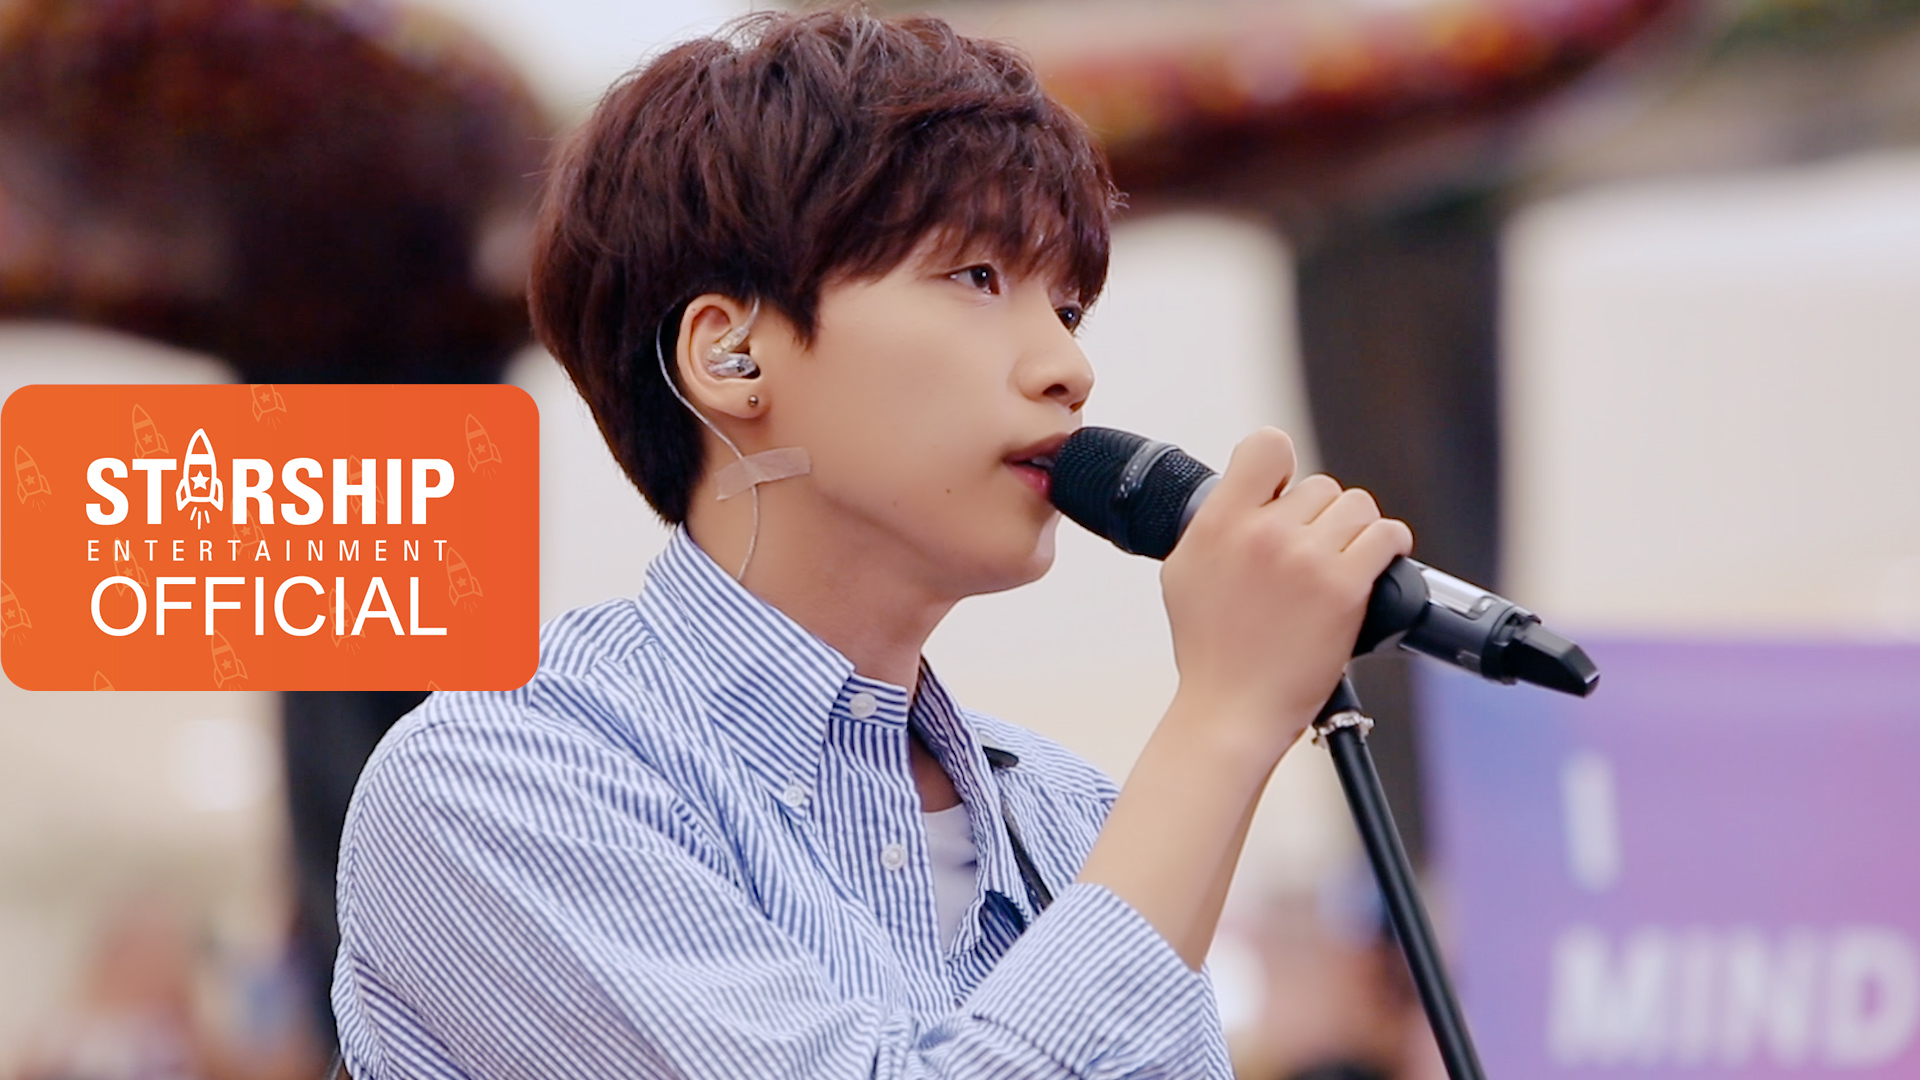 [Special Clip] 정세운(Jeong SeWoon) - Mercy, 오해는 마